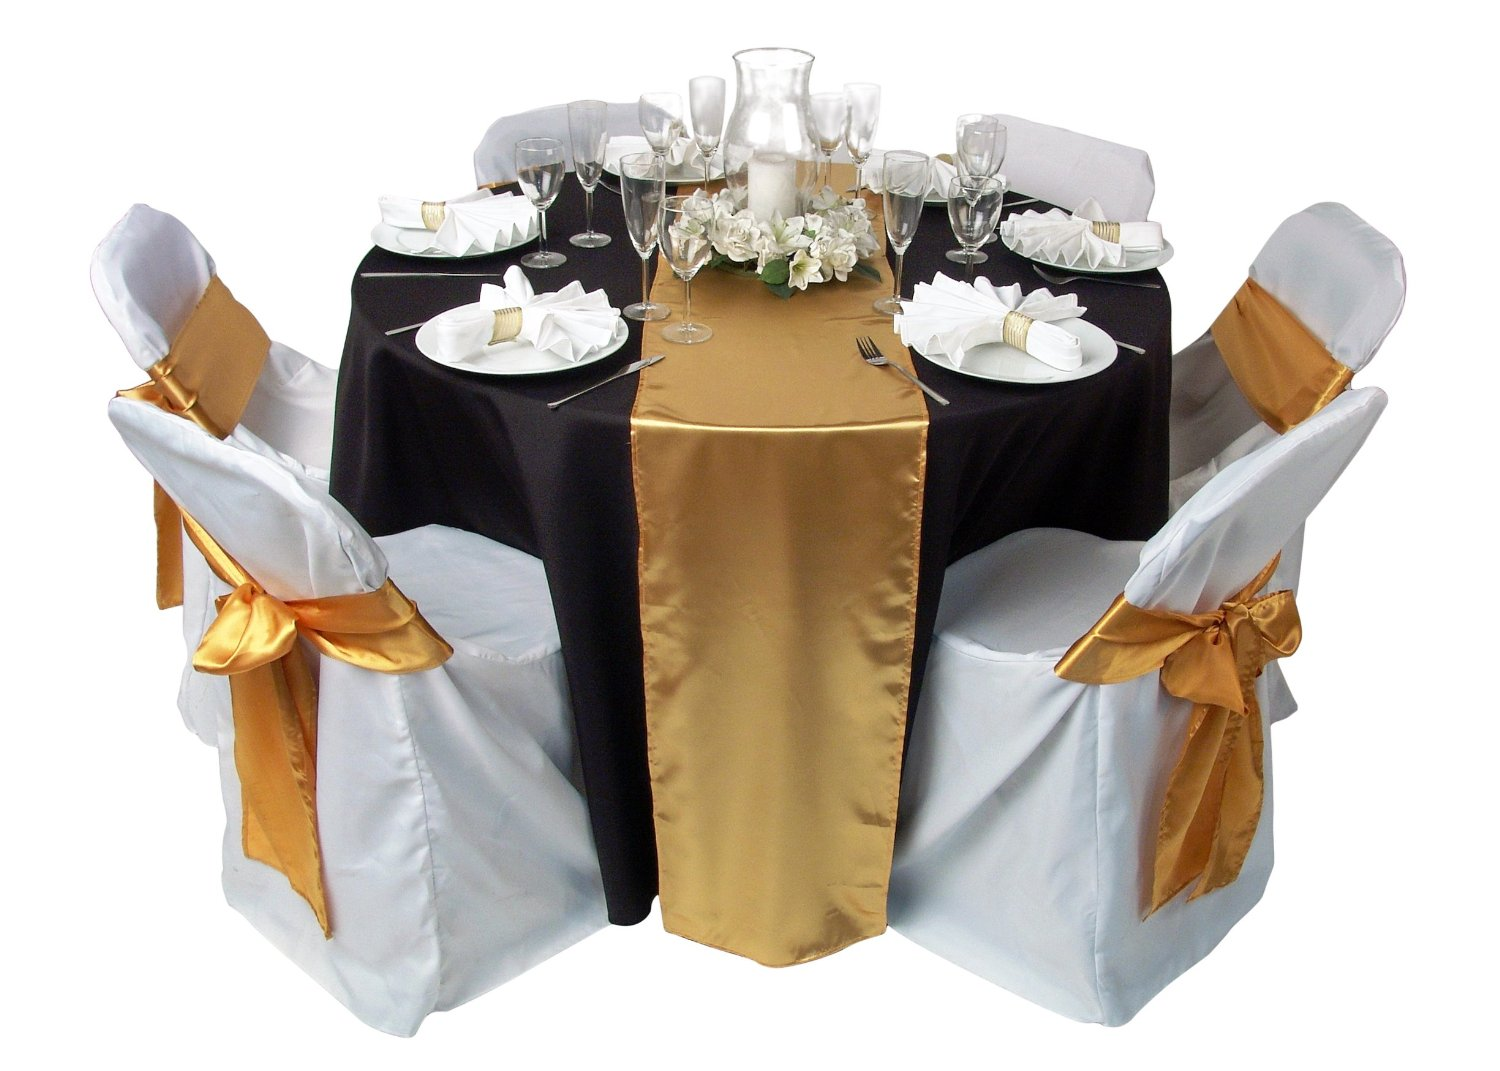 New chair covers for folding chairs ... covers for folding chairs instructions how to make folding chair covers timnqaw